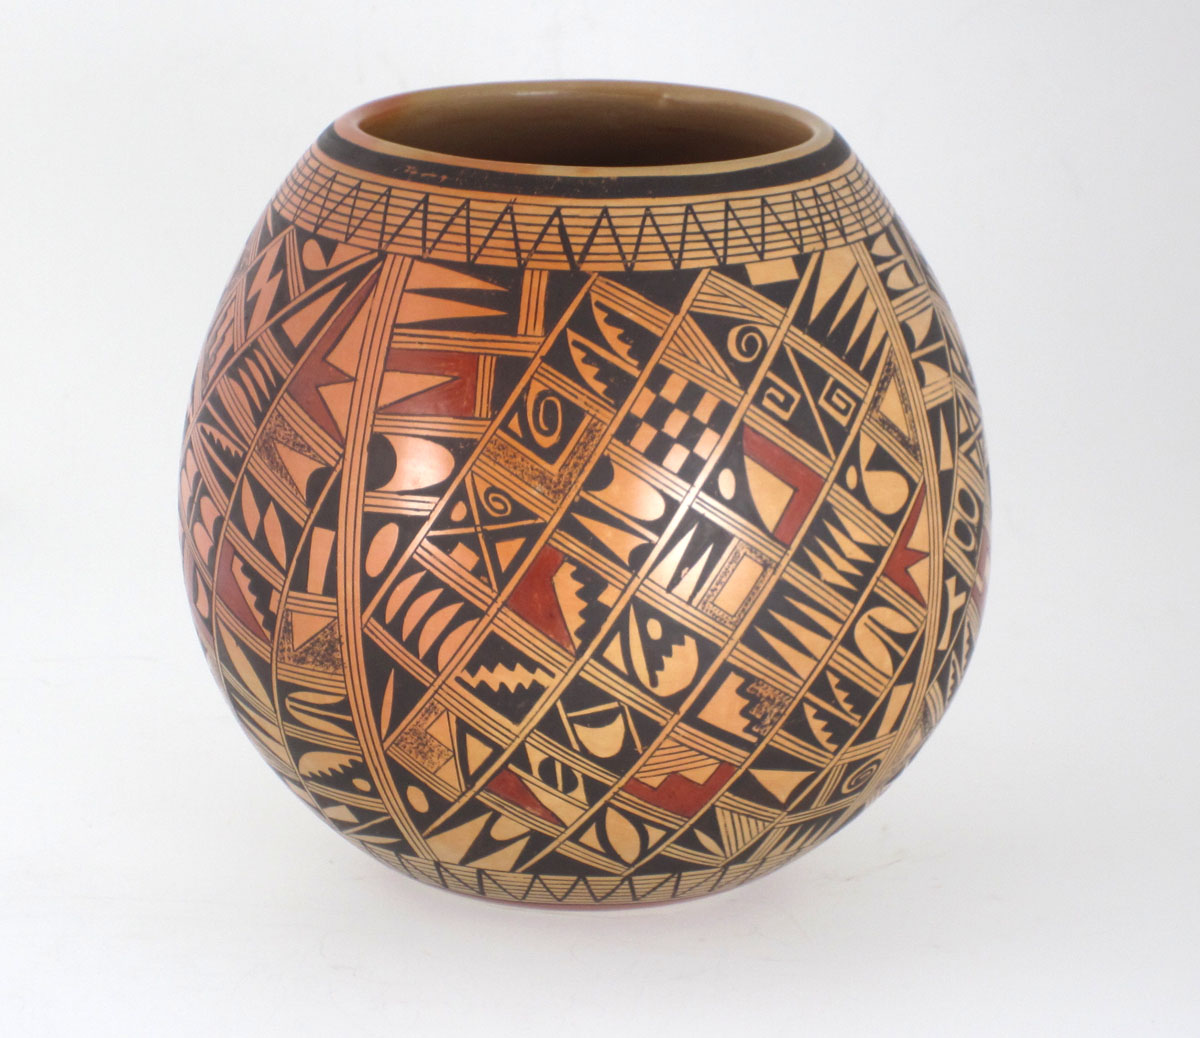 Rondina Huma pot with multiple images of Prehistoric Hopi pottery designs, 1989. https://www.marcyburns.com/pottery-collection/ywokniw724eolruurxphvbsihydry5